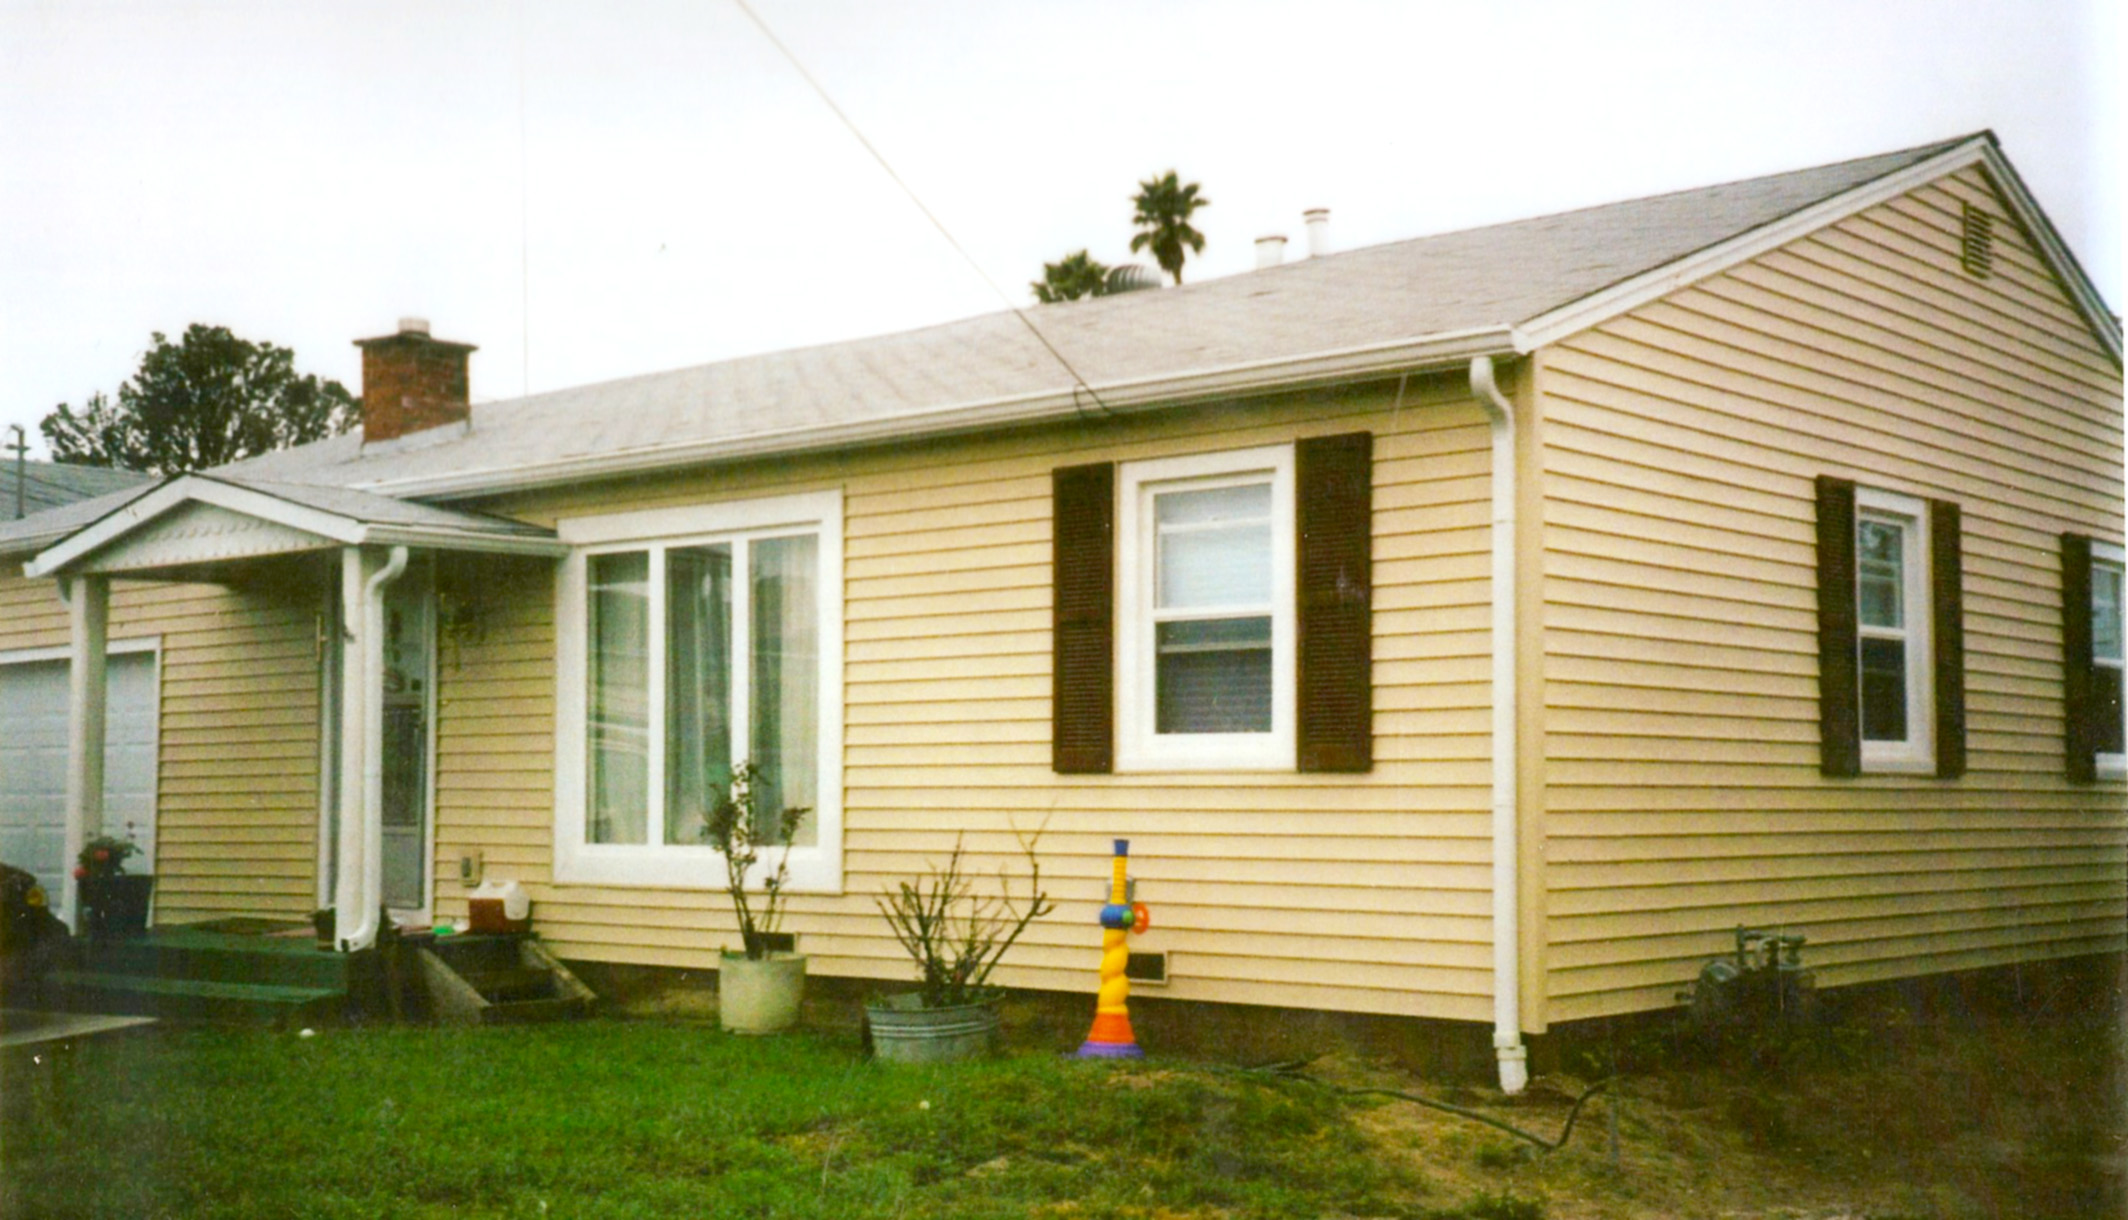 House-rennovated-with-replacement-siding-and-windows